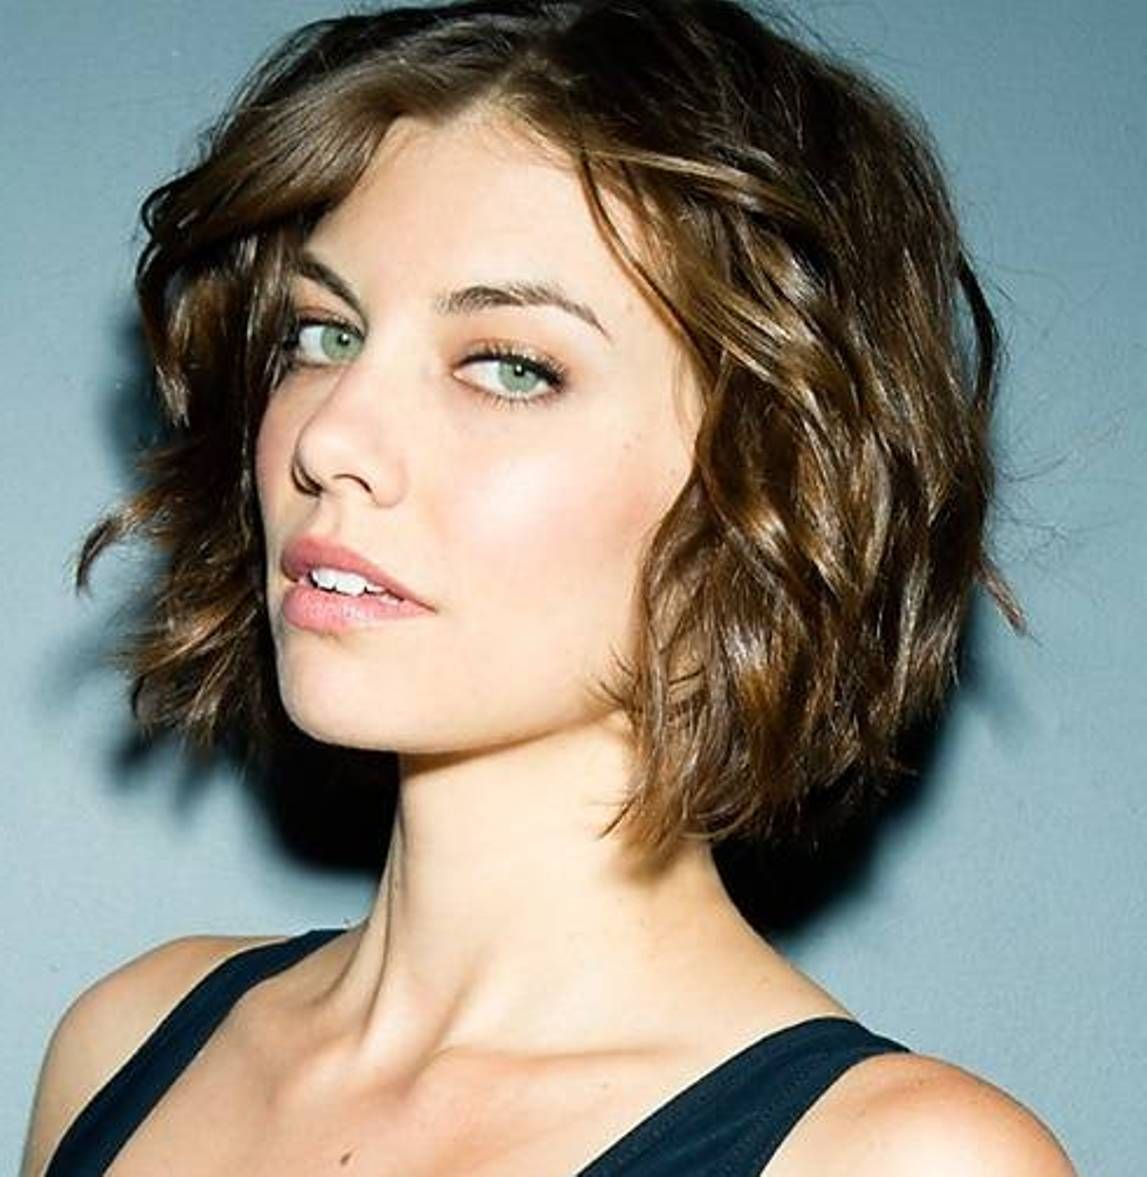 Short Wavy Curly Hairstyles Most Beautiful Looking Short Hairstyles For Wavy Hair Wavy